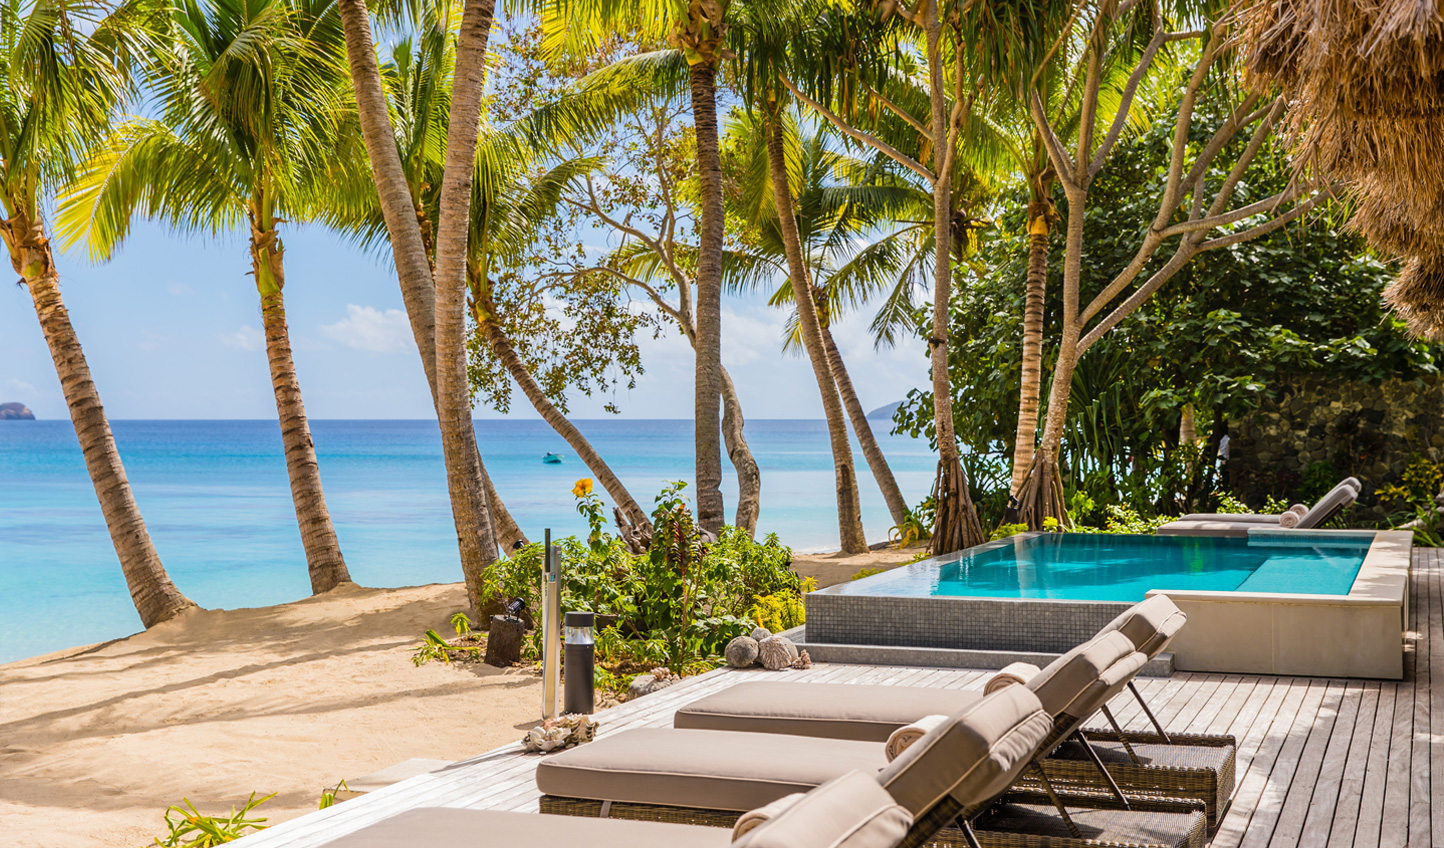 Step from your villa deck straight onto the sand